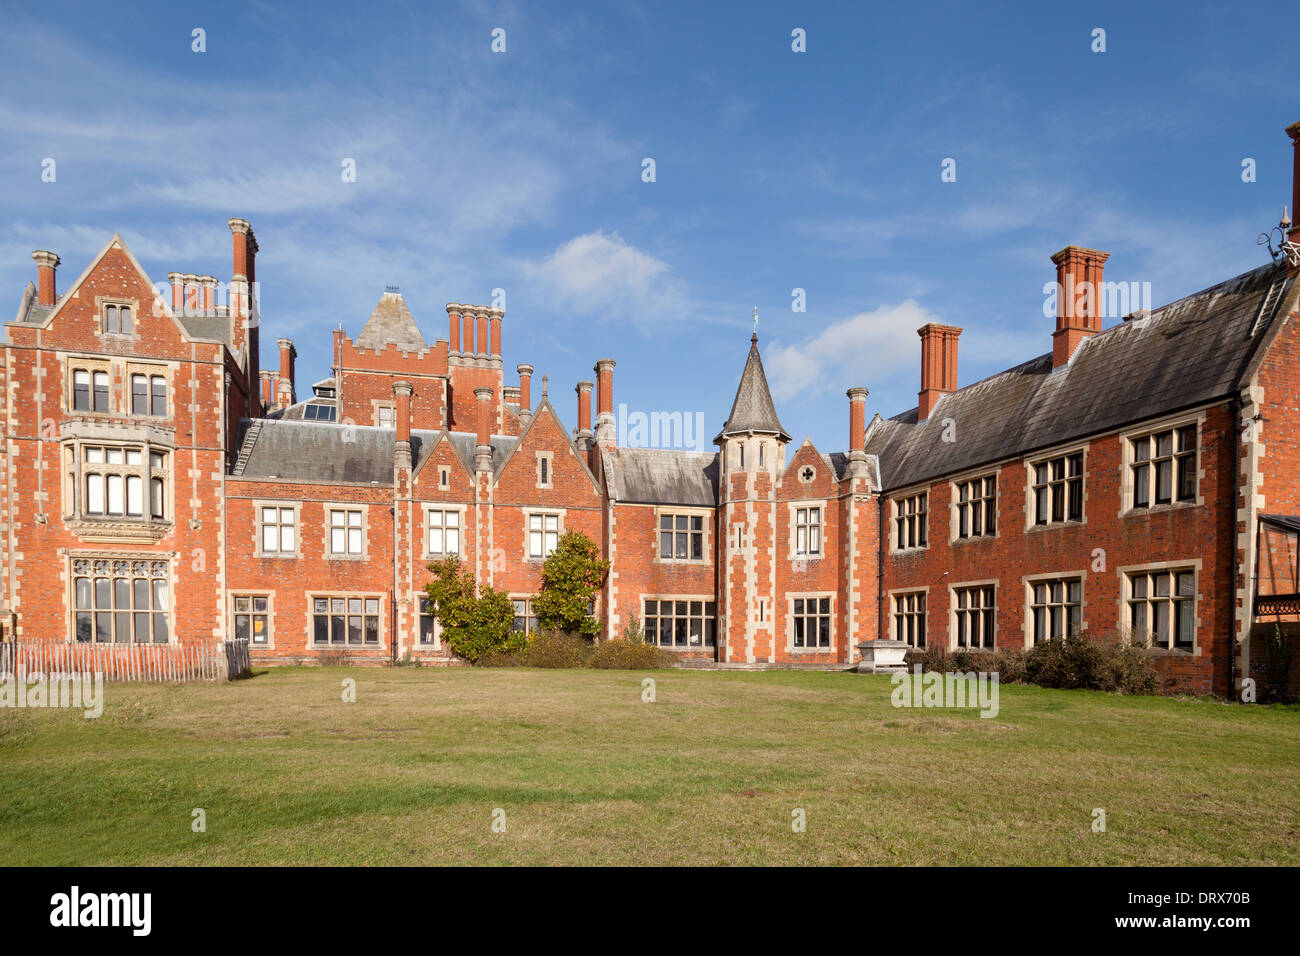 Taplow Court, a large Victorian house; Taplow, Buckinghamshire England UK - Stock Image